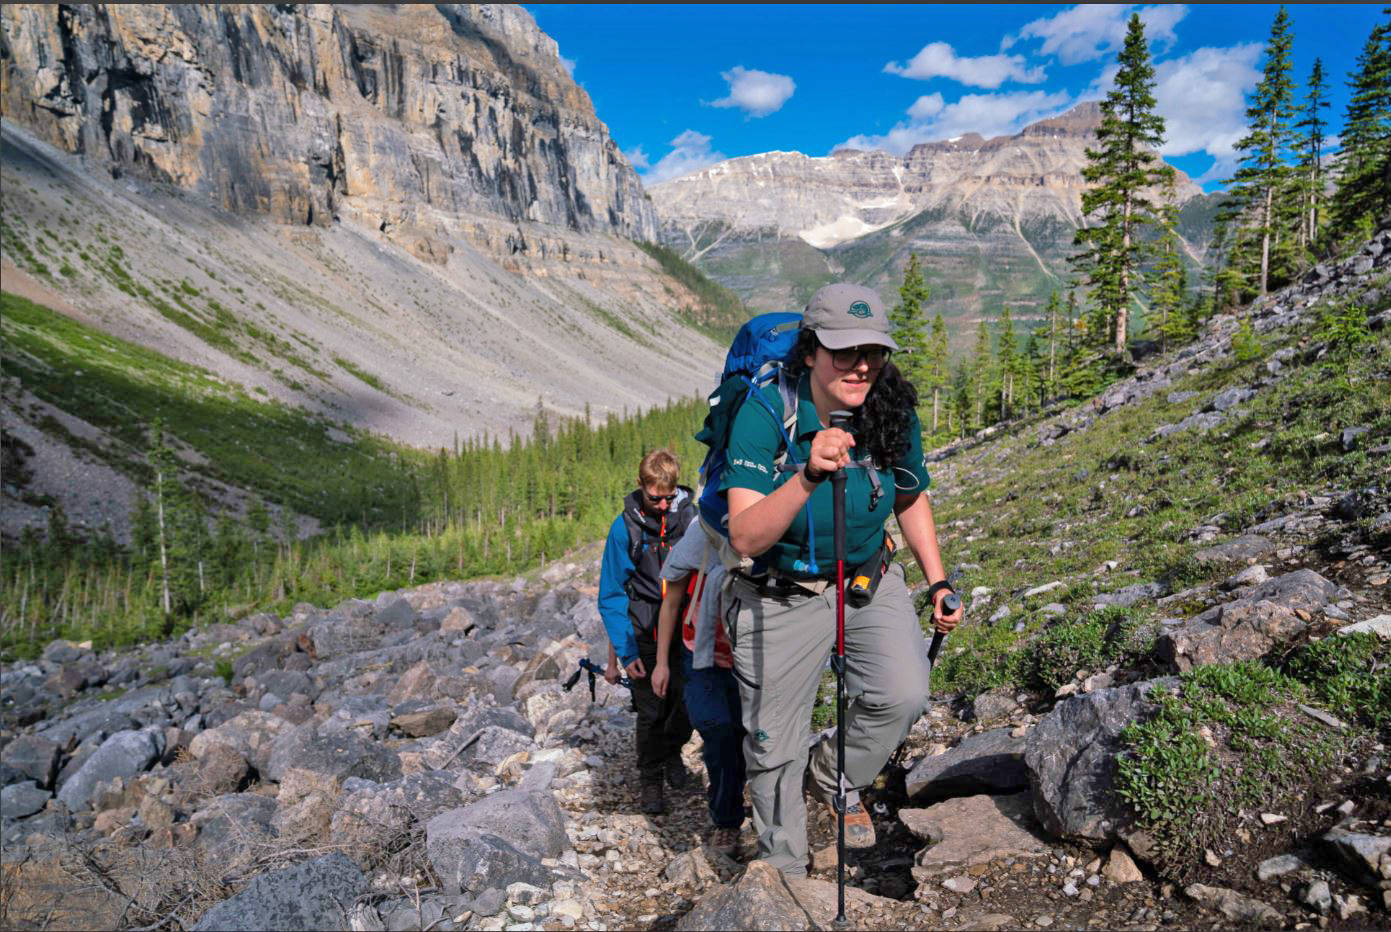 The trails to reach the fossils are steep, and often unstable. Hiking poles are required on the Mount Stephen hike, and recommended on all trails. Zoya Lynch/Parks Canada photo.